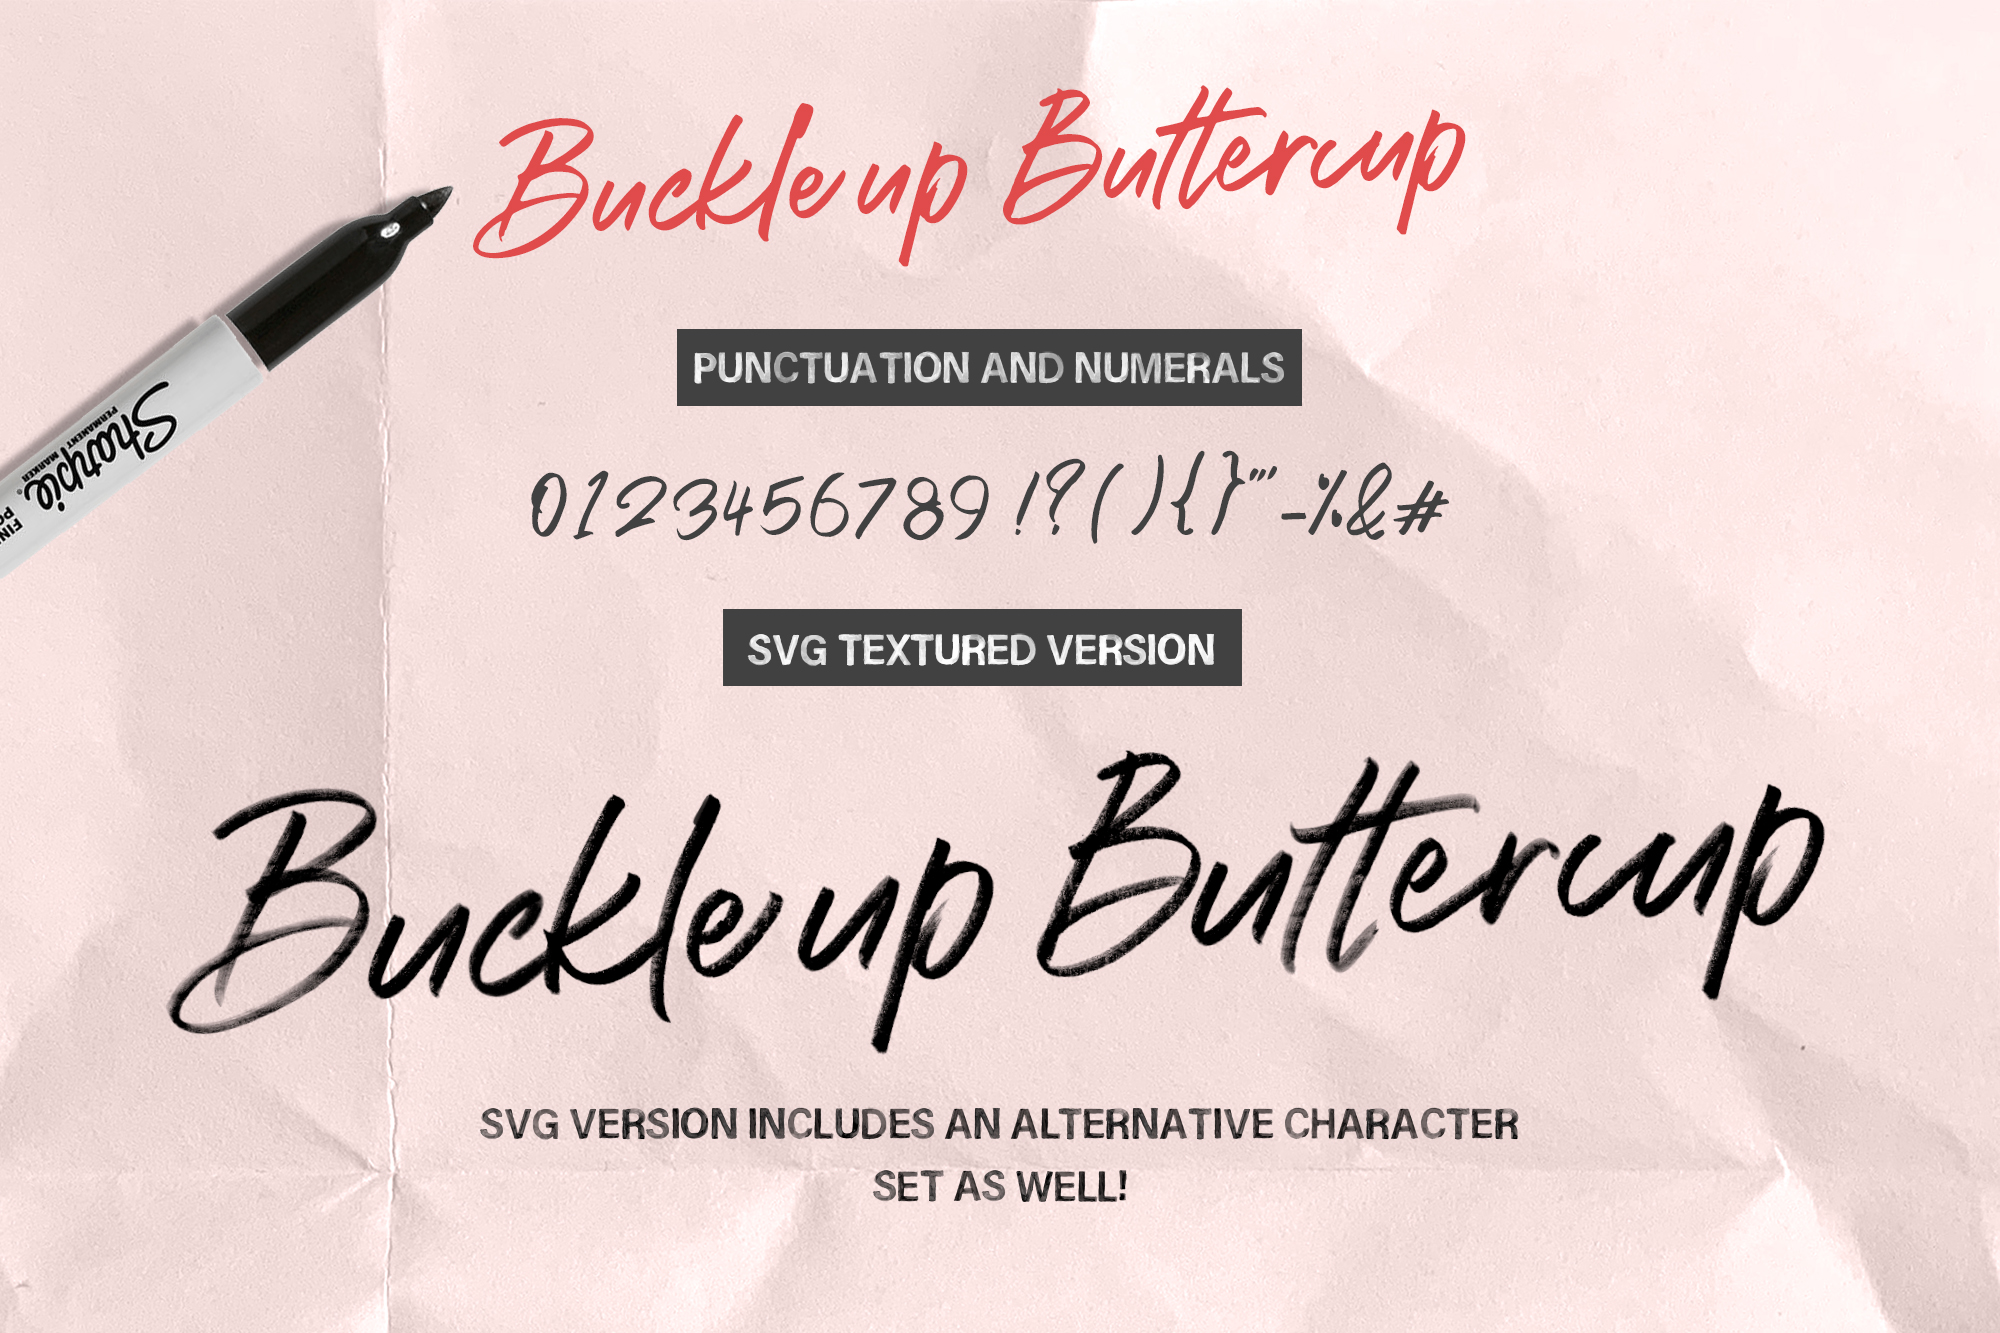 Buckle up Buttercup Marker Font example image 18